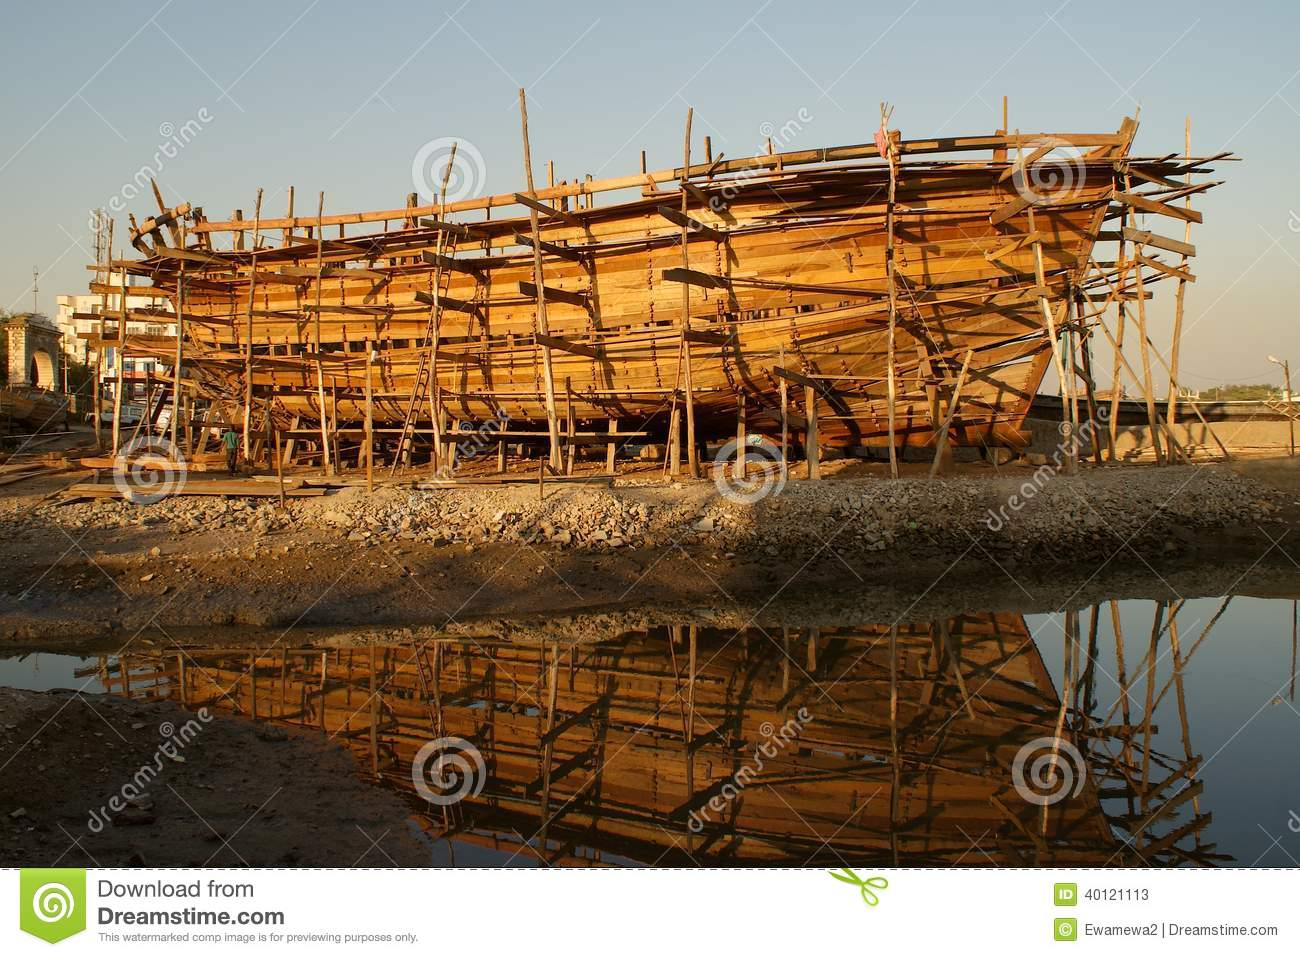 Wooden Boat Under Construction Stock Image - Image of transport, boat: 40121113